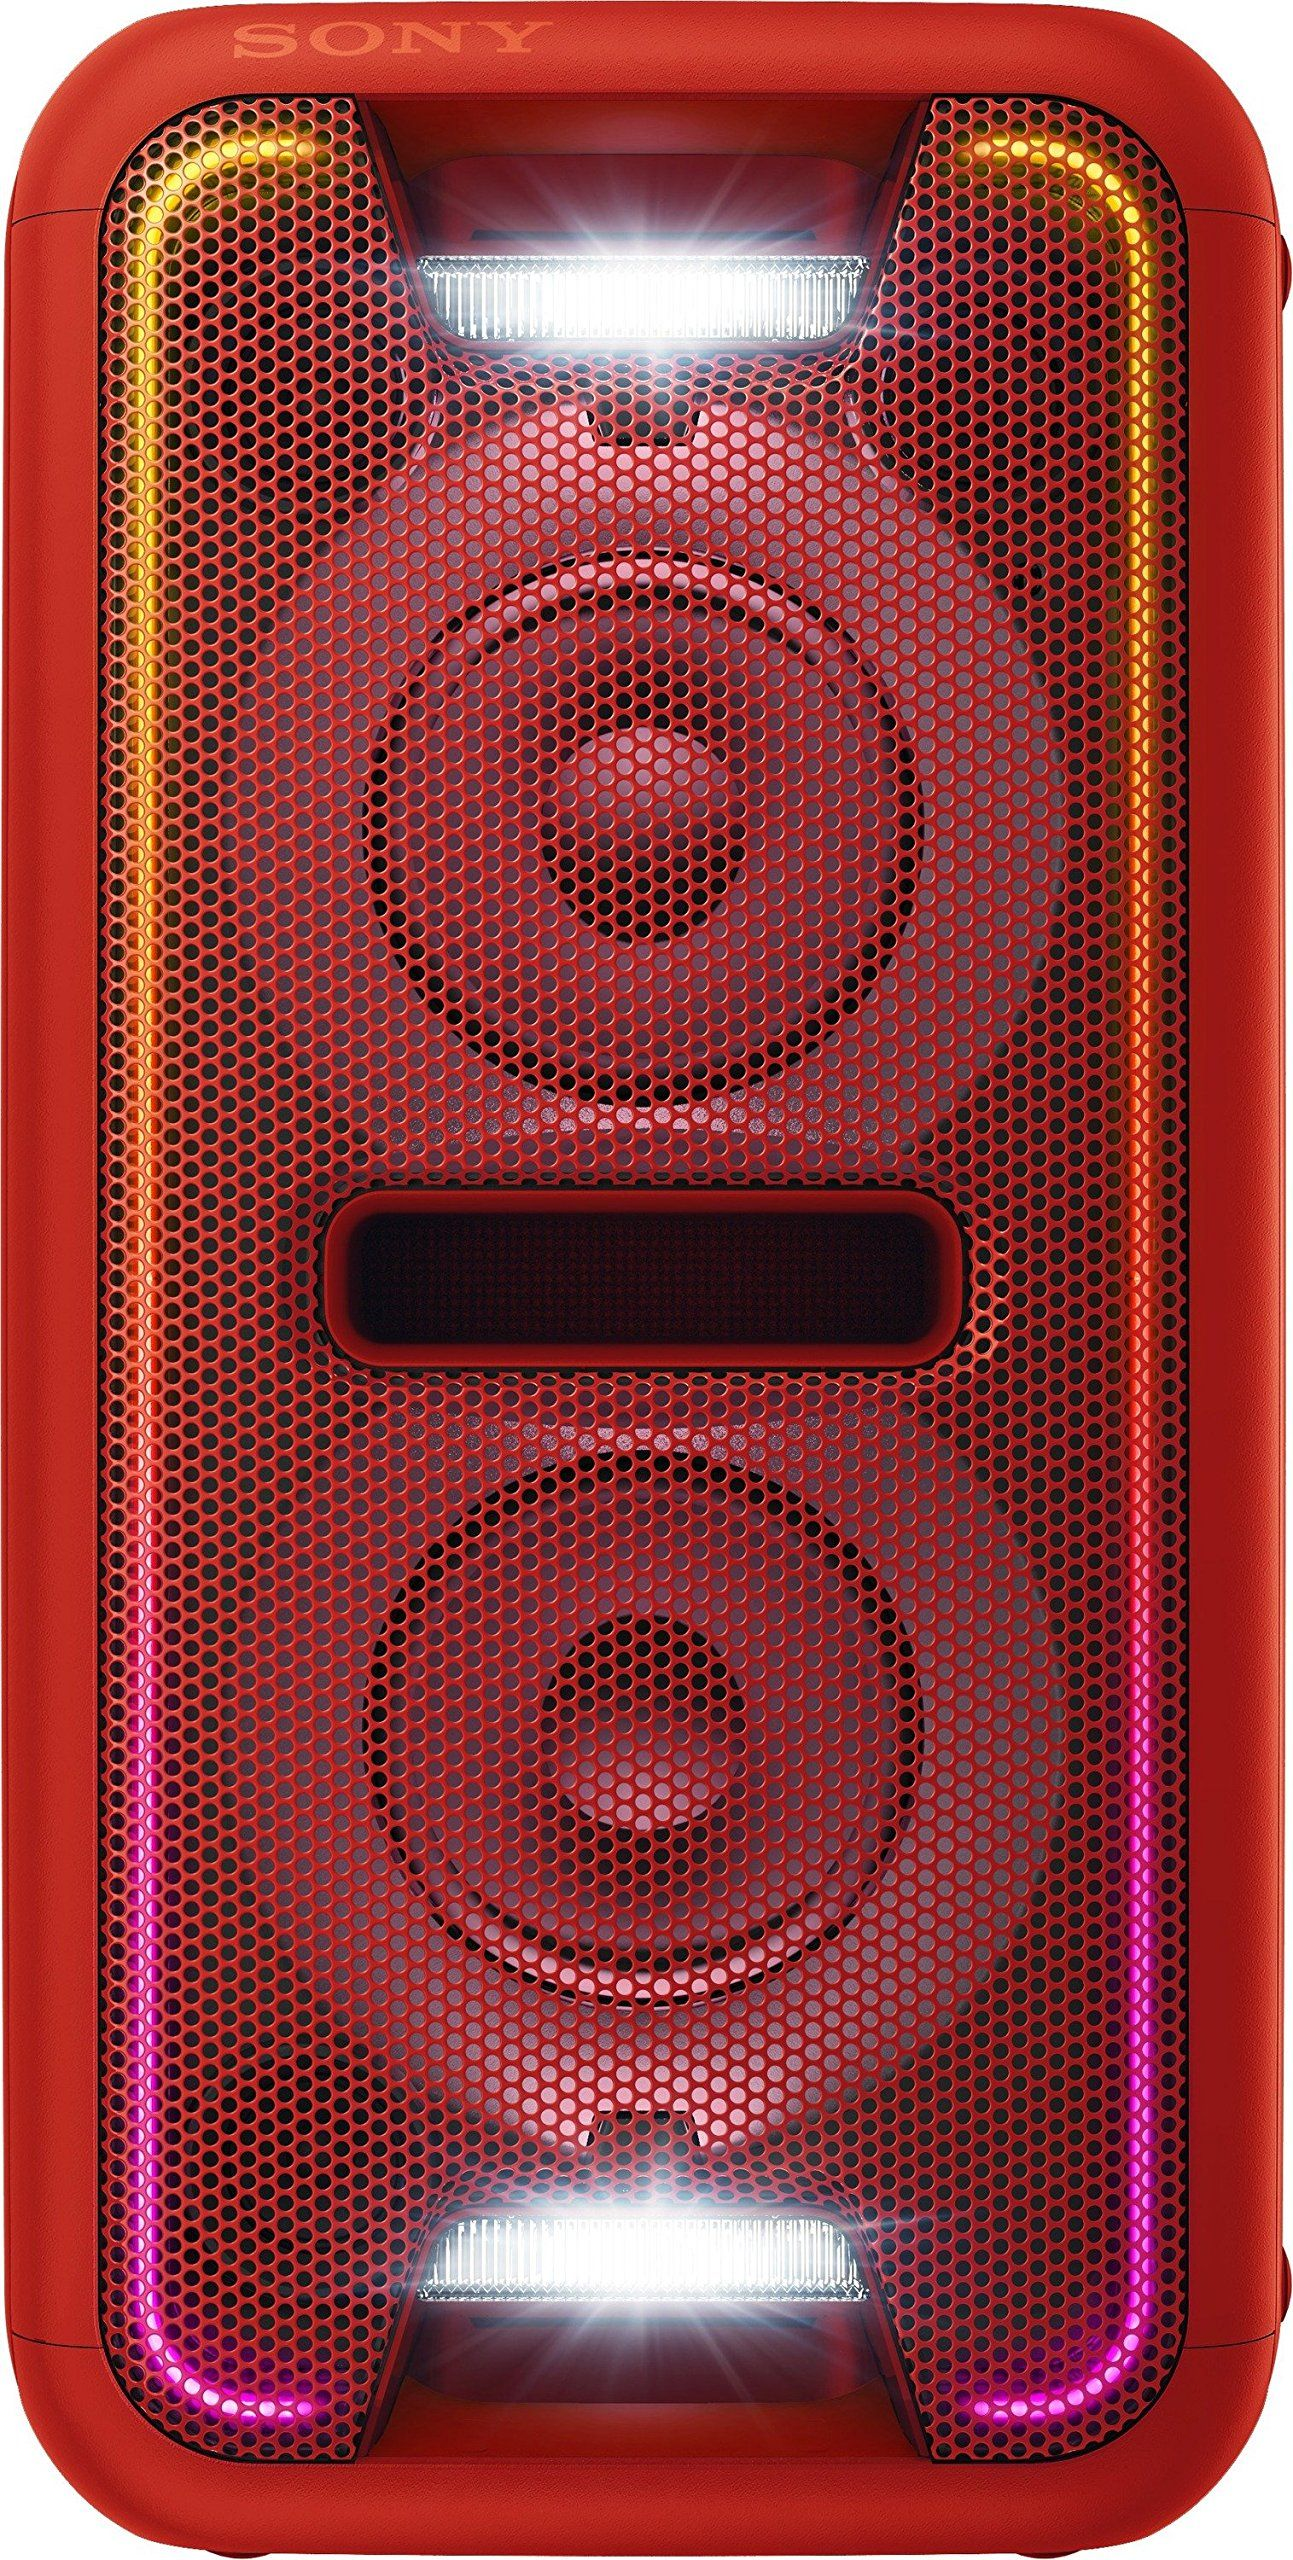 Sony Gtkxb7rc High Power Home Audio System With Bluetooth Walkman Resolution Nw A35 Yellow